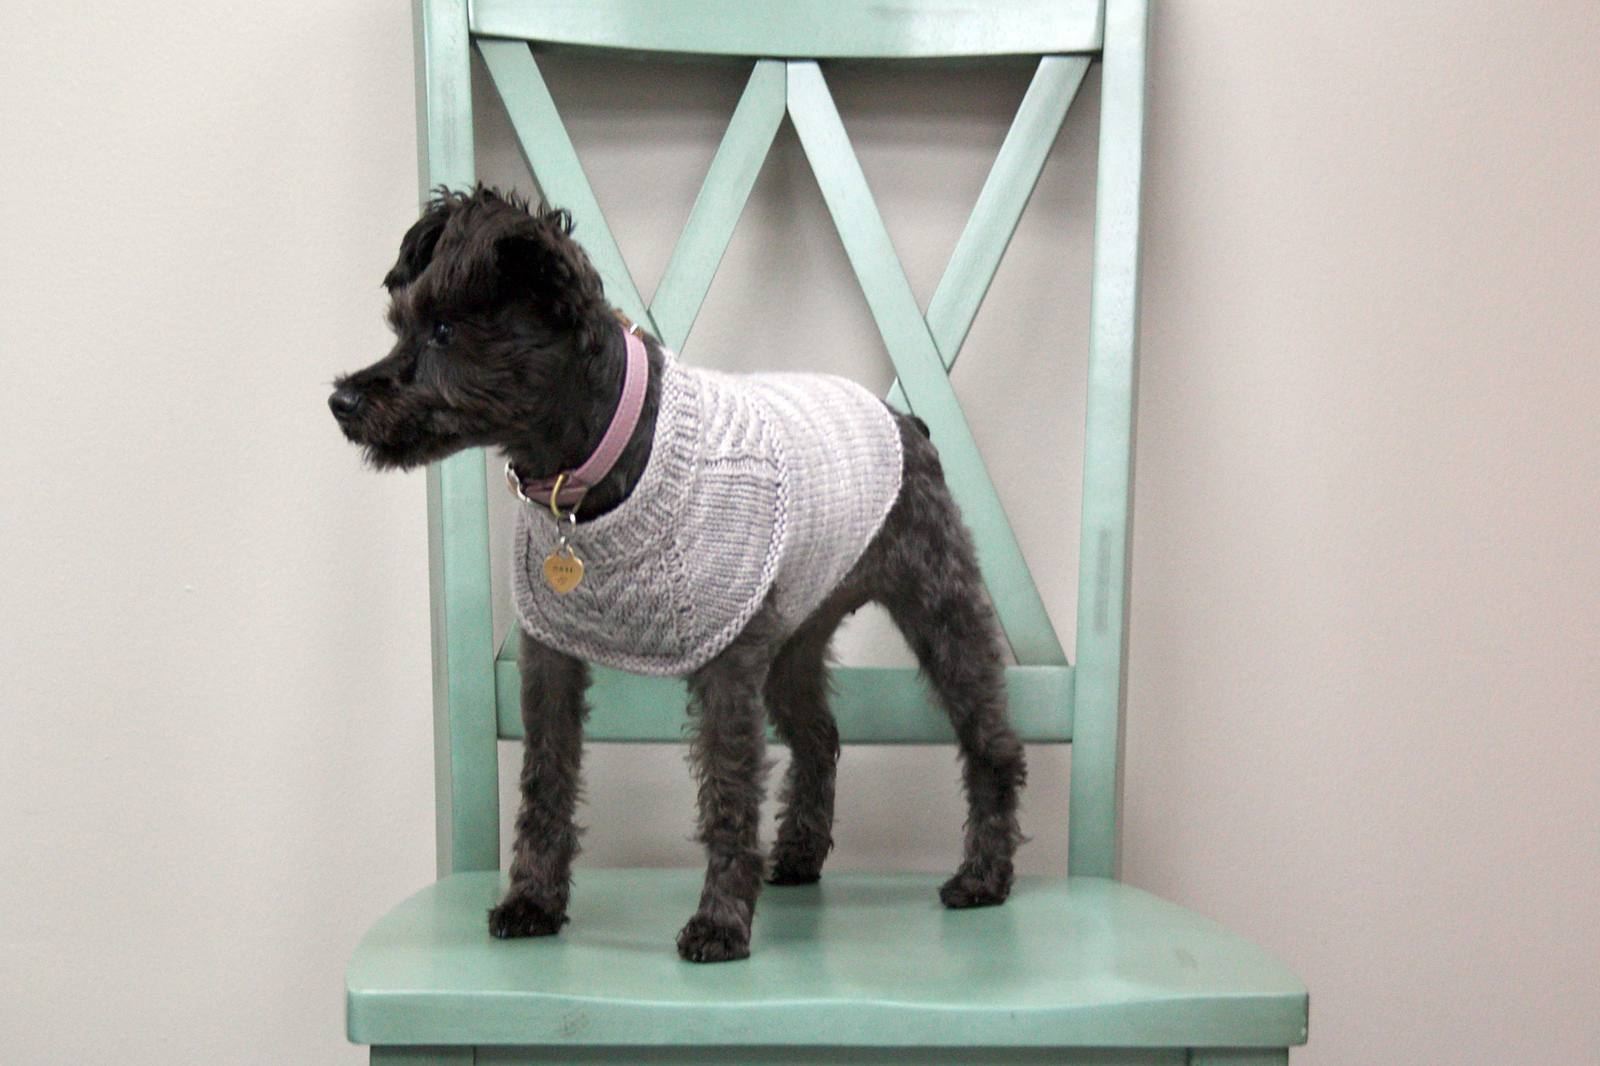 Dachshund Jumper Knitting Pattern 12 Dog Sweaters And Other Knitting Patterns For Pups